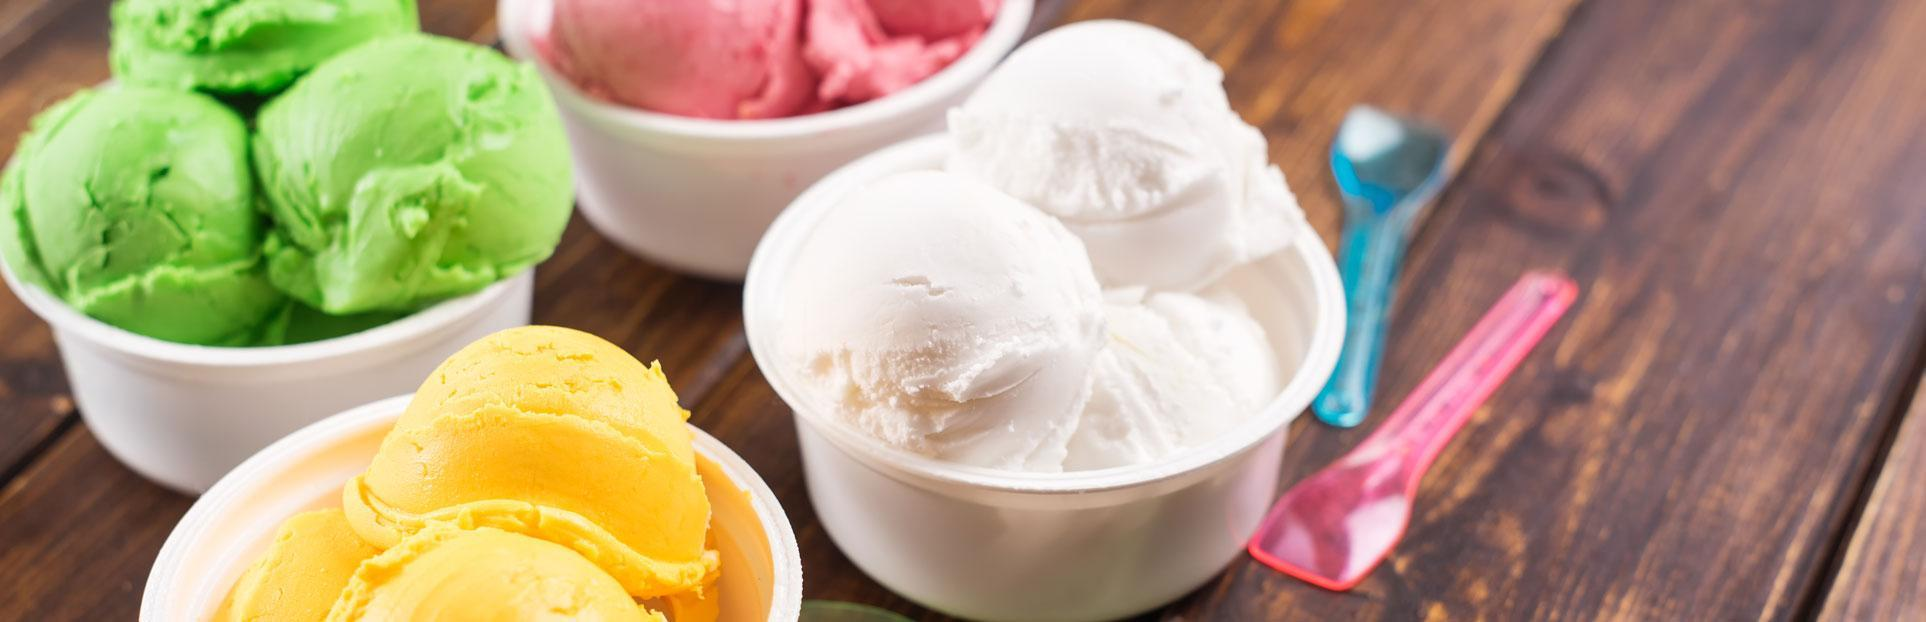 Ice Cream dairy flavorings